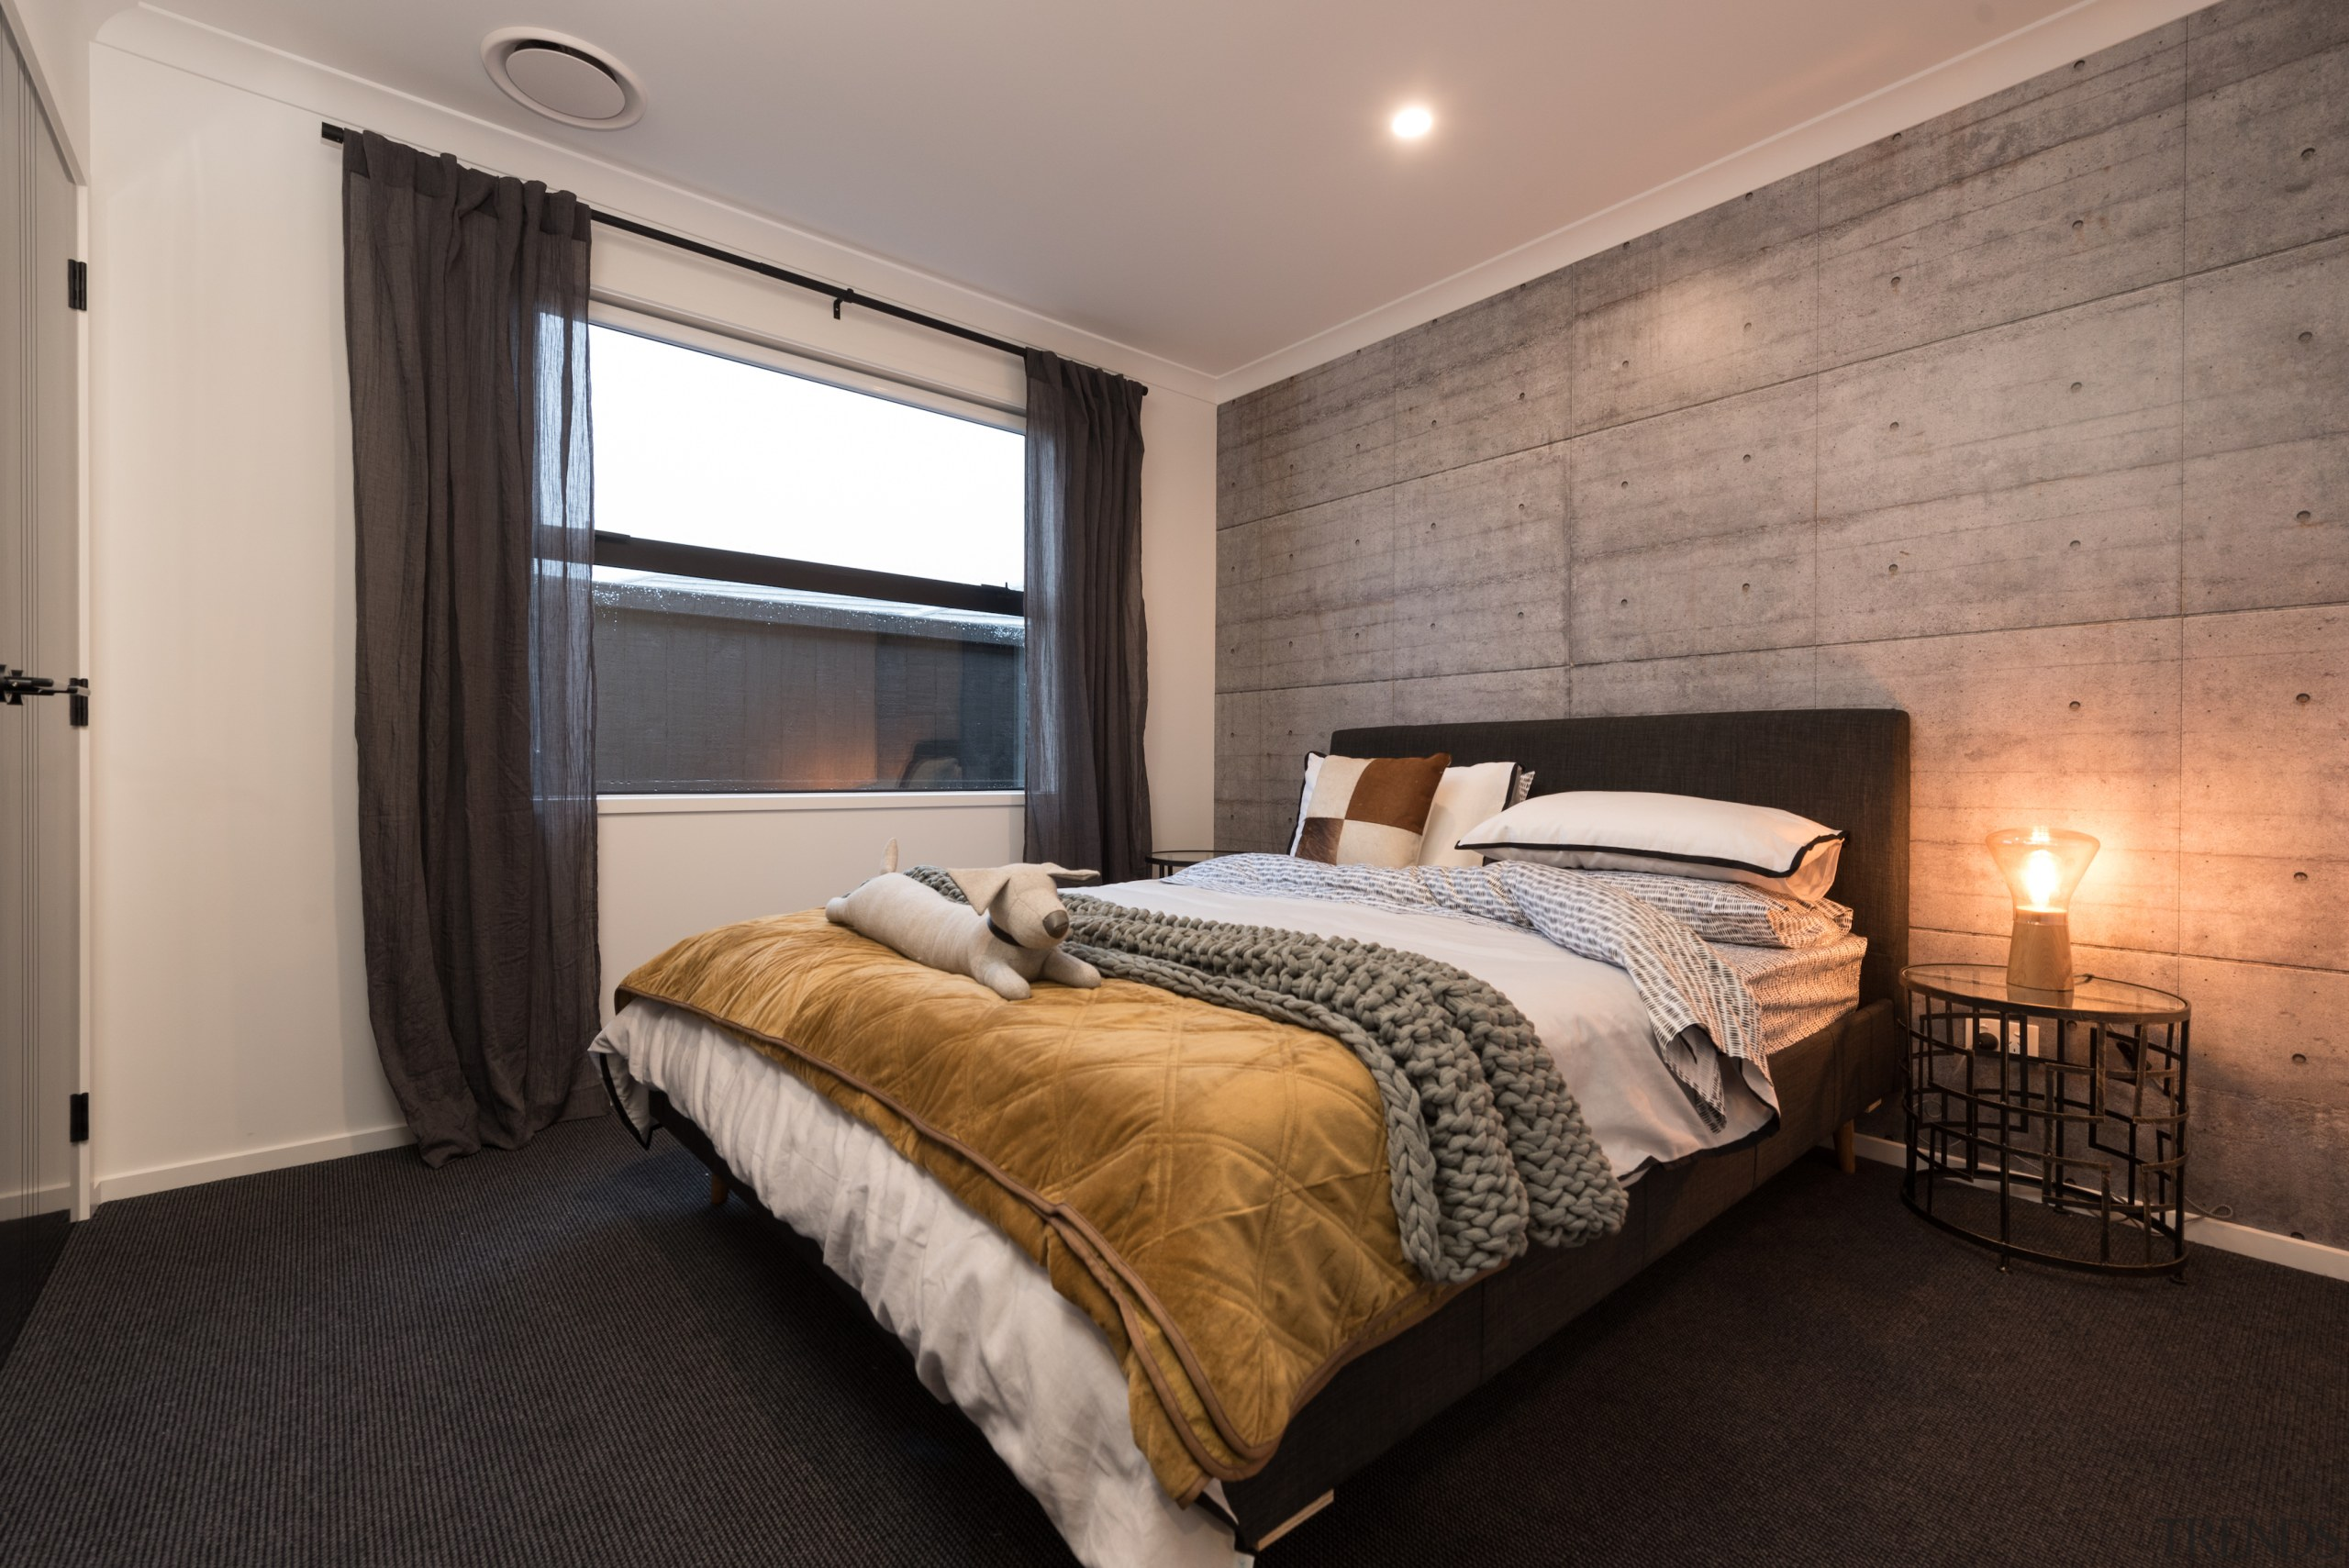 Board formed concrete creates a feature wall with